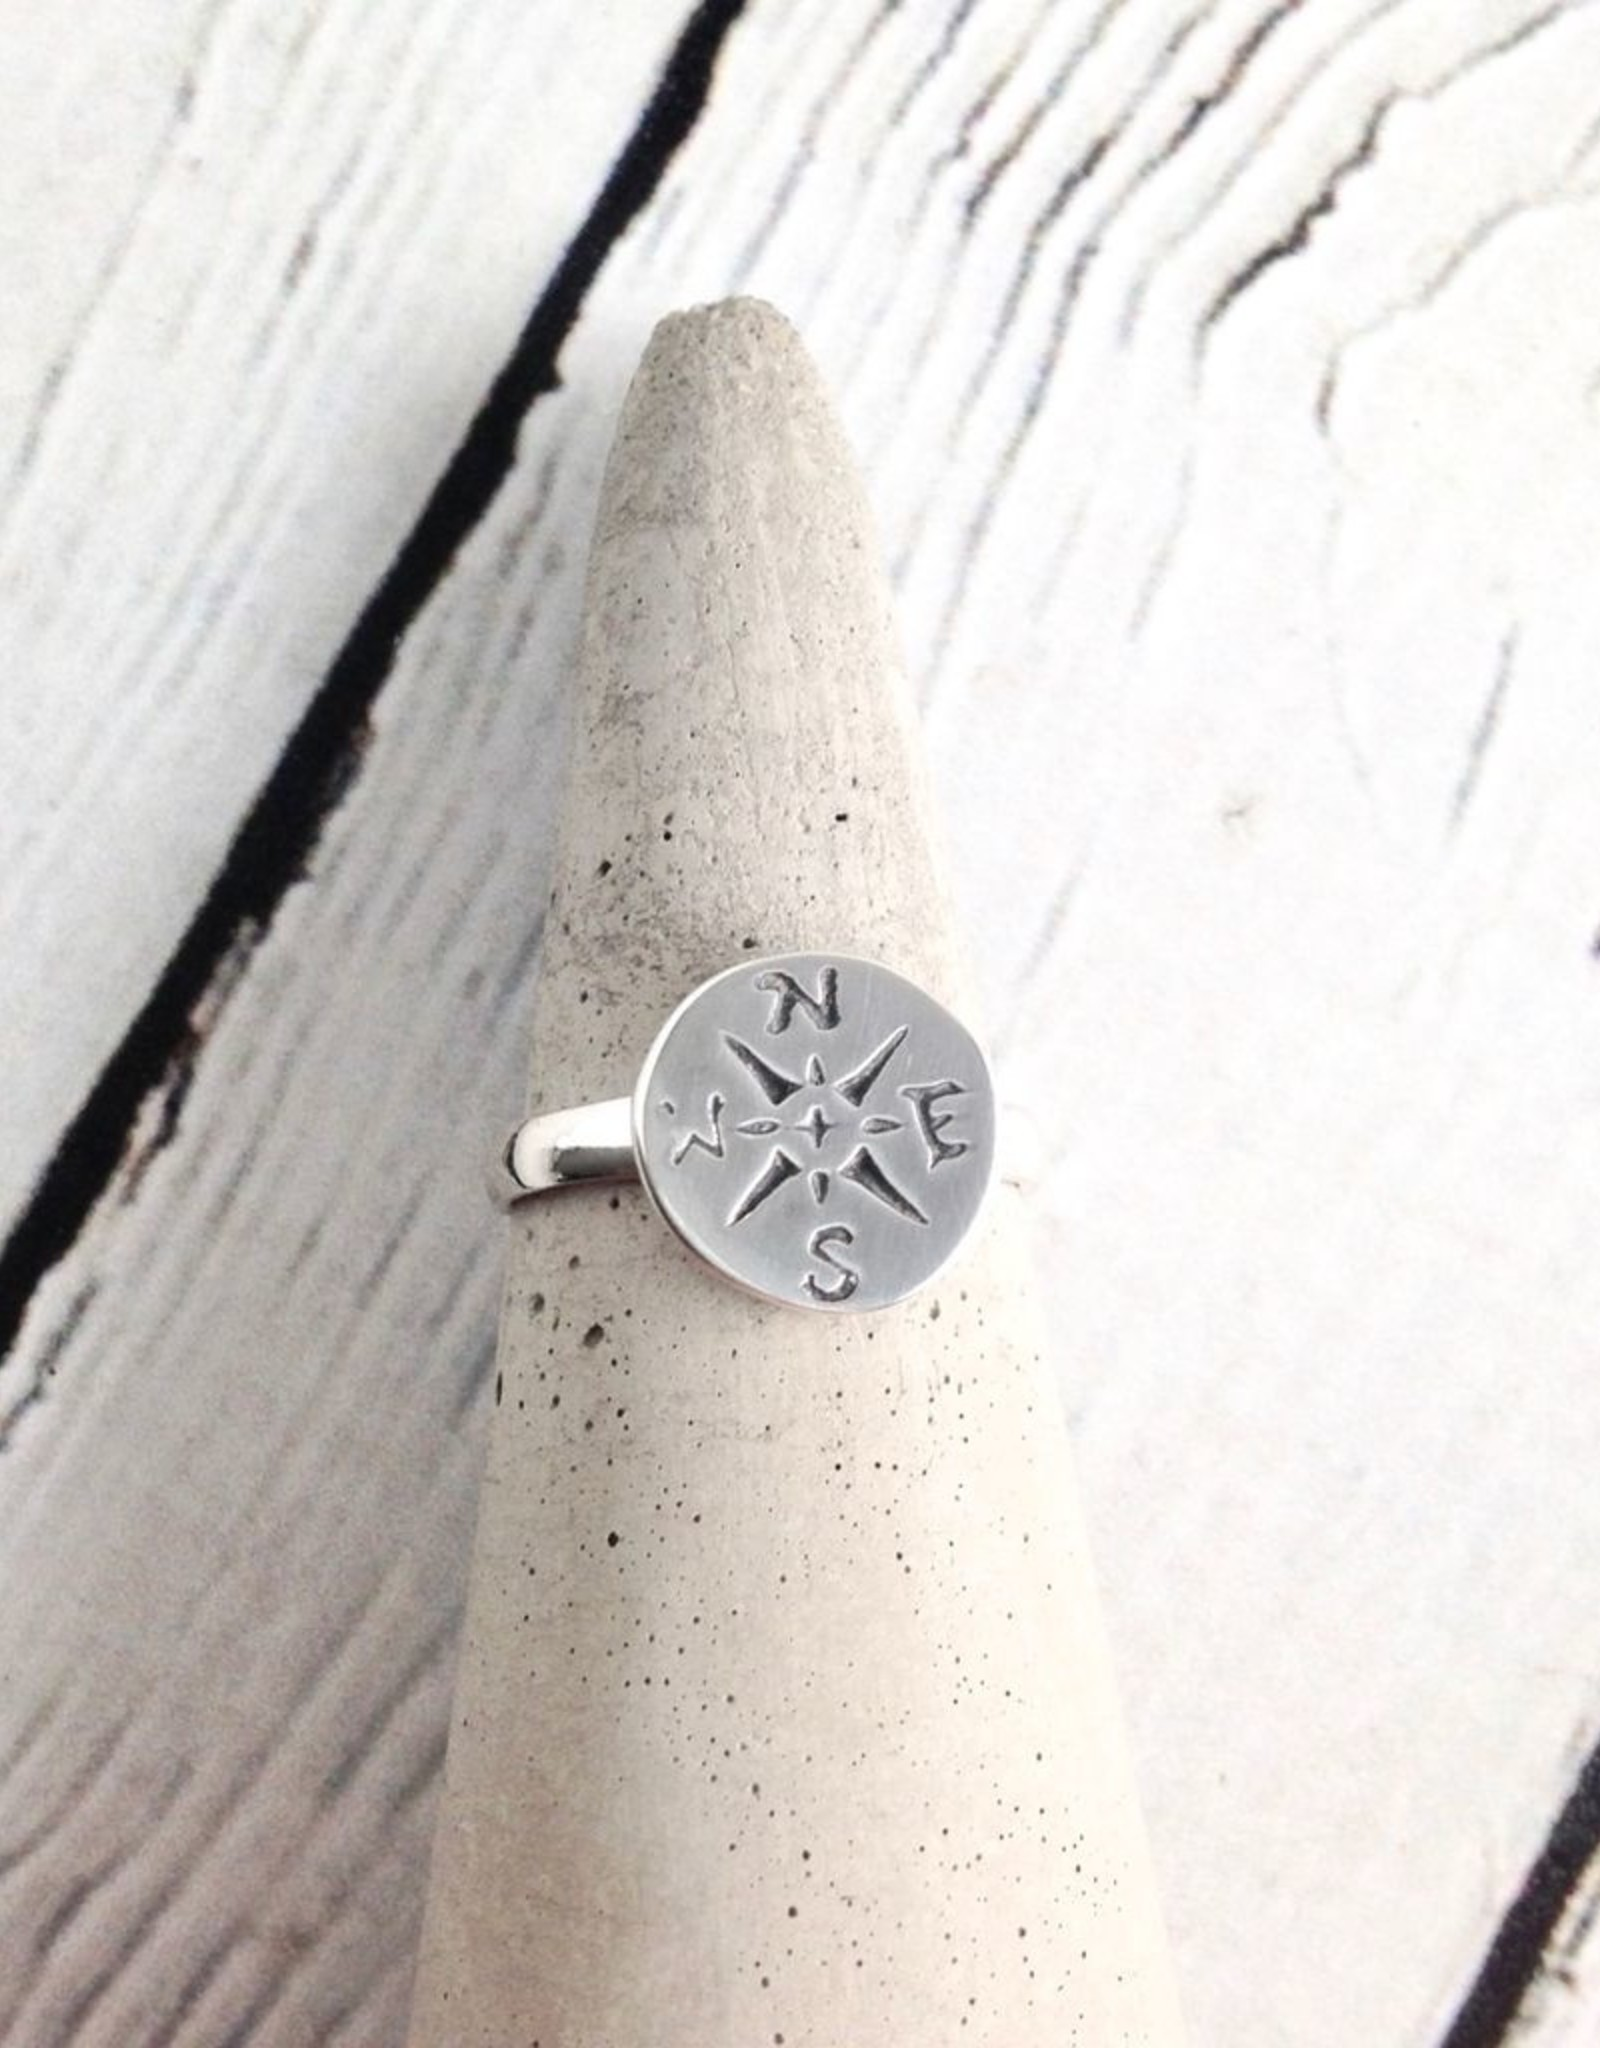 TigerMtn Sterling Silver Journey (Compass) Ring, JNY, 6